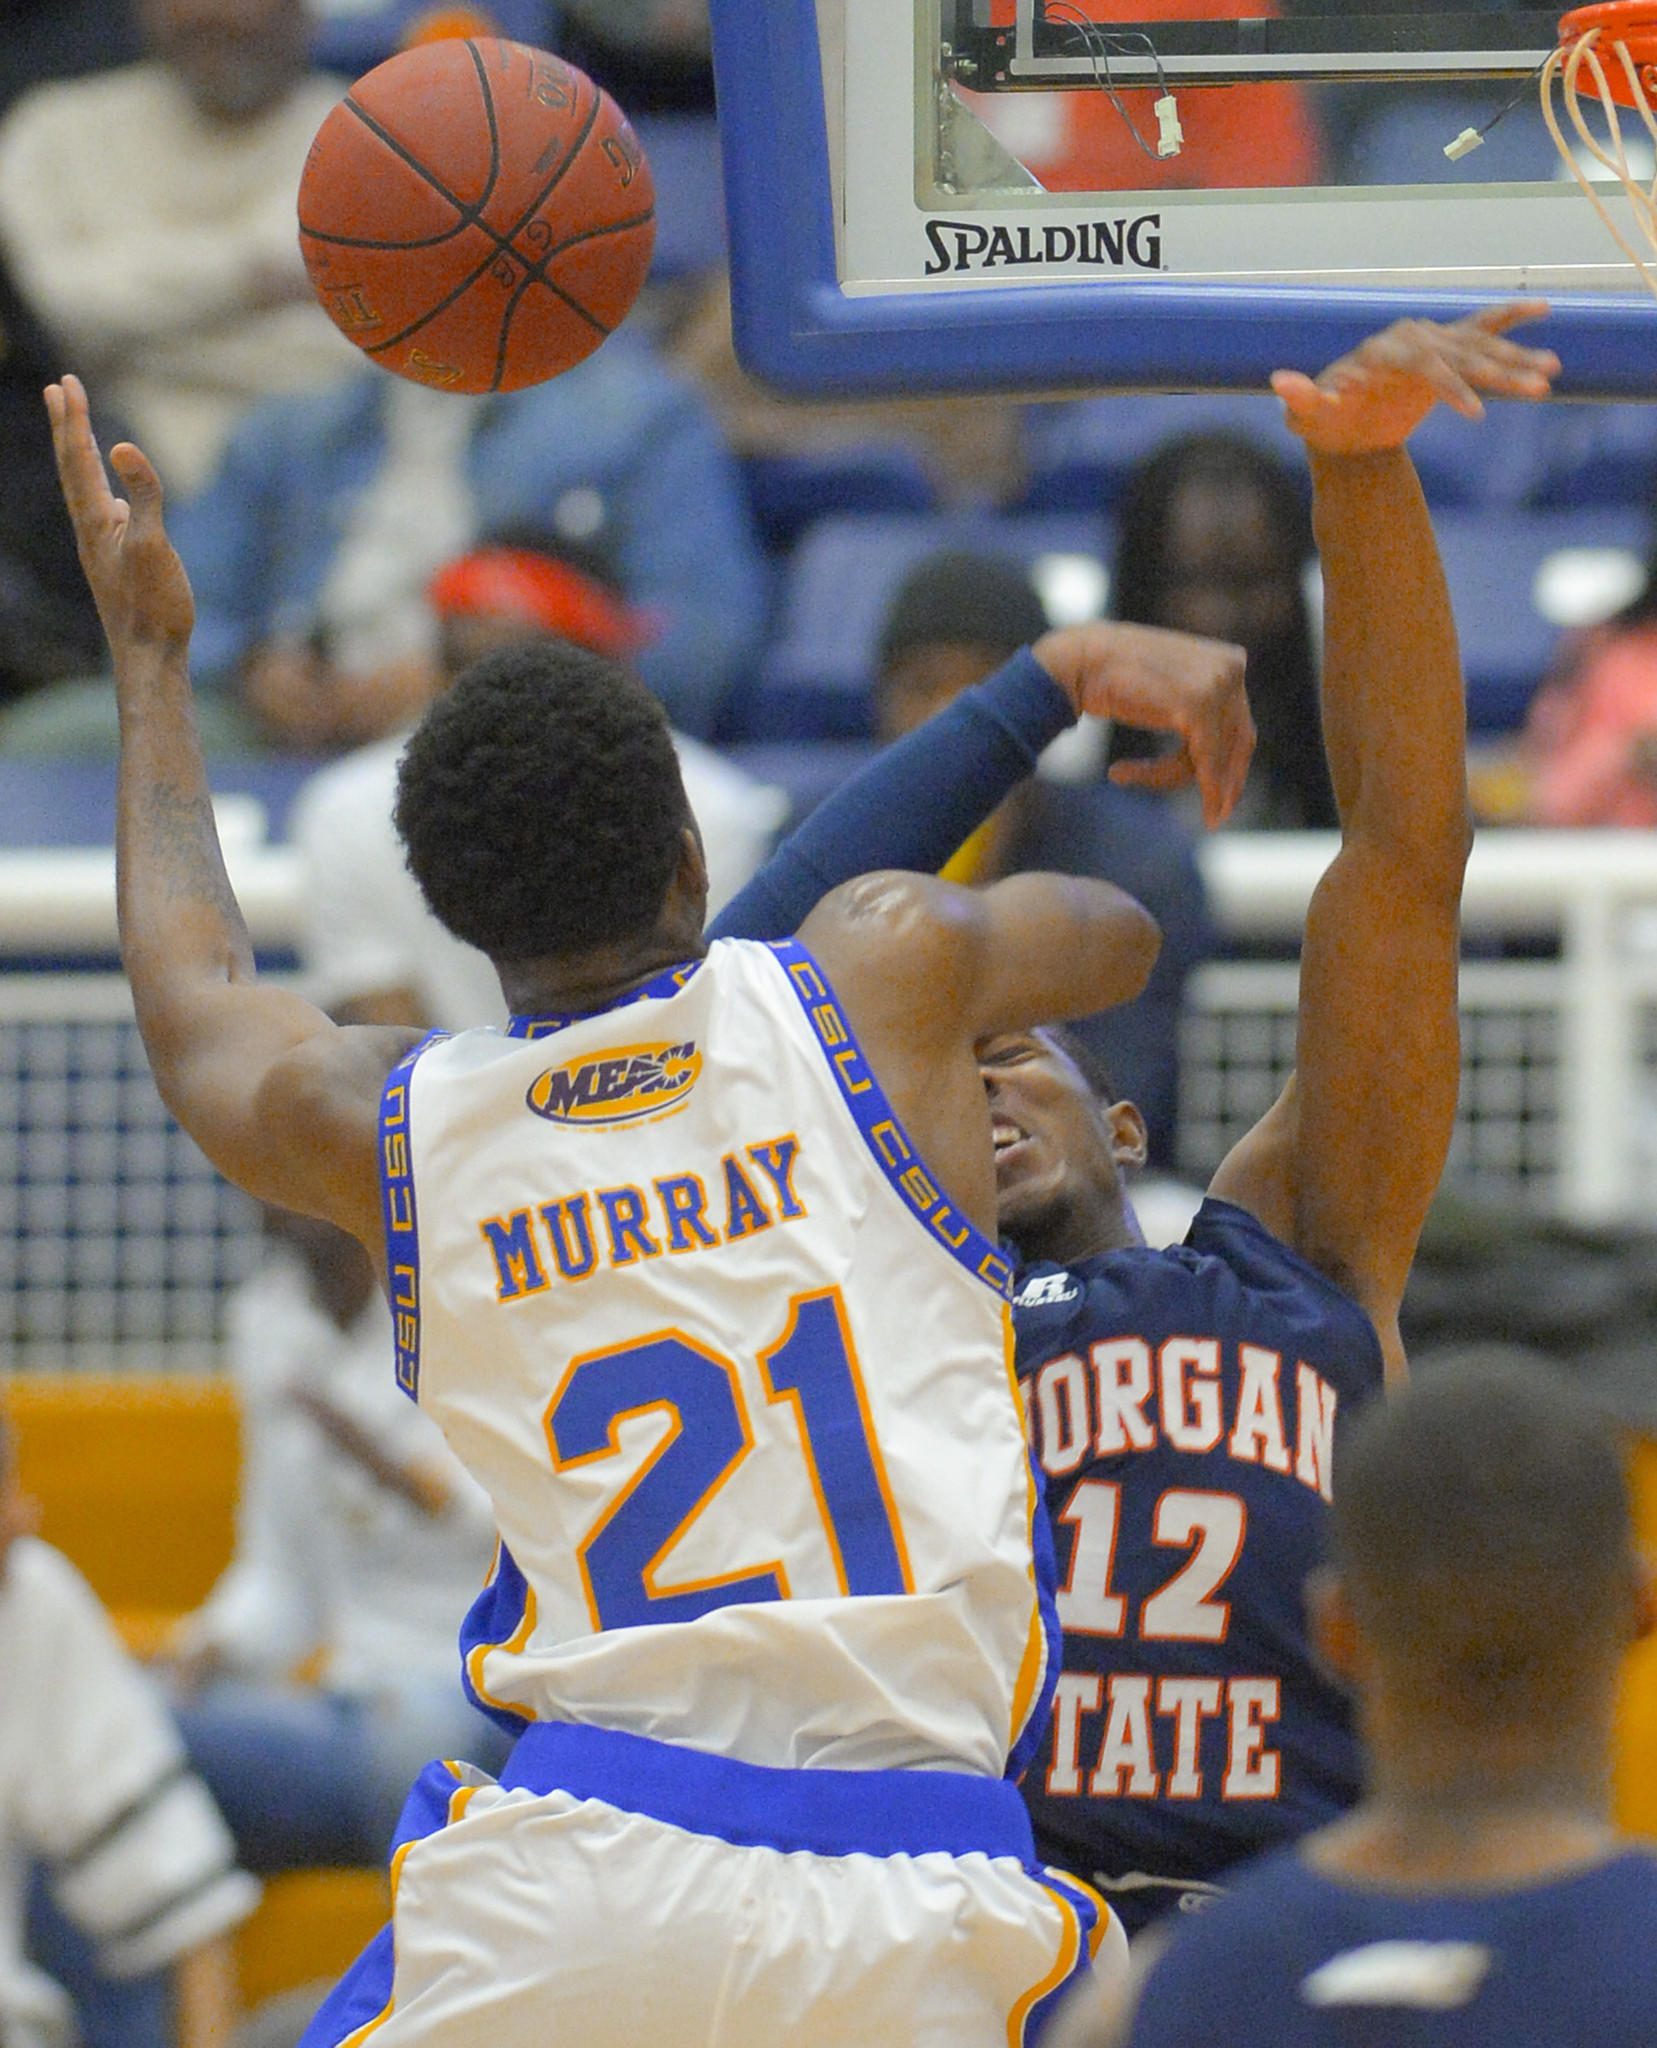 Morgan State forward Thair Heath is injured on this foul by Coppin State forward Michael Murray during the first half on Monday.